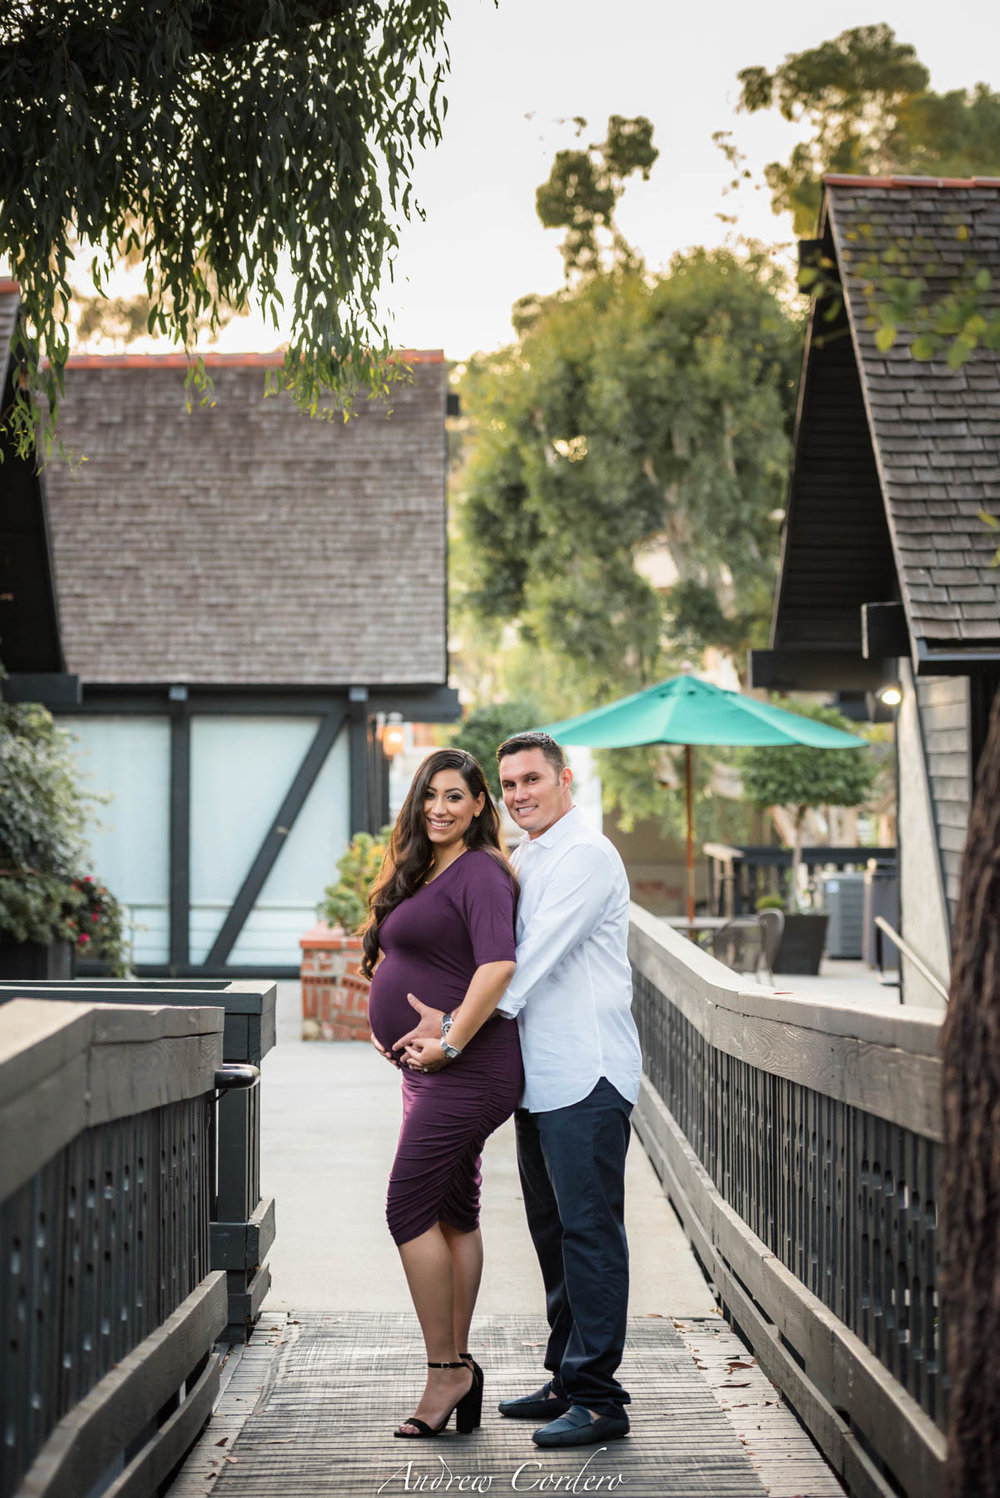 Laguna-Beach-Maternity-session-Lily-and-Erick-9882.JPG